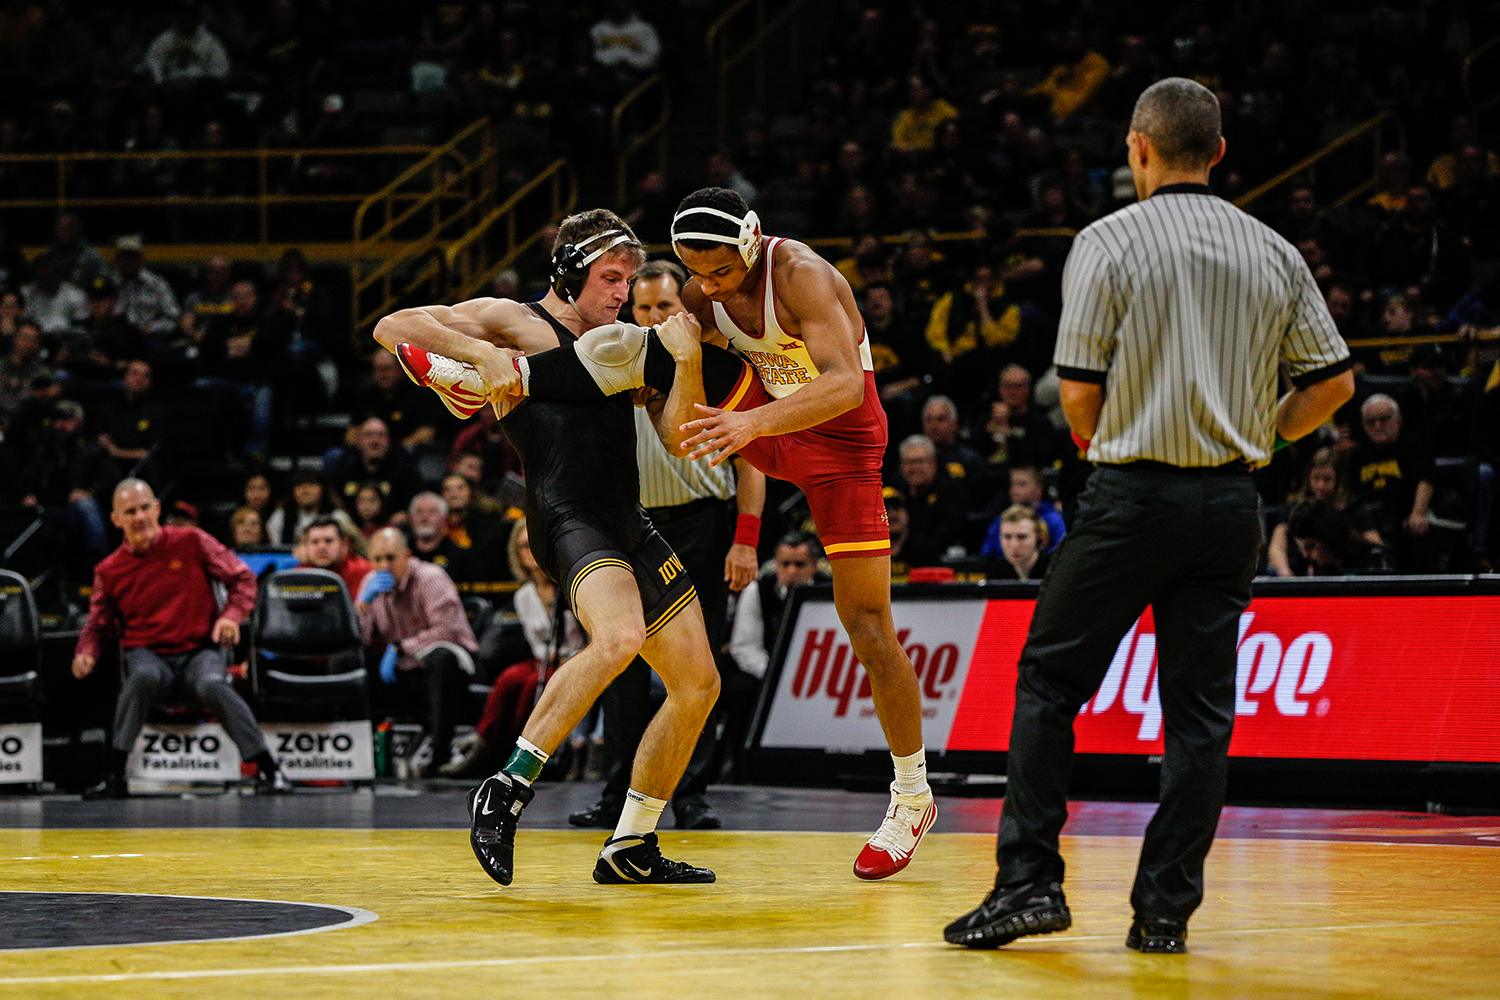 Iowa's Myles Wilson wrestles Iowa State's Marcus Coleman during Iowa's dual meet against Iowa State at Carver-Hawkeye Arena in Iowa City on Saturday, December 1, 2018. Wilson lost to Coleman after an injury default. Iowa defeated the Cyclones 19-18. (Wyatt Dlouhy/The Daily Iowan)